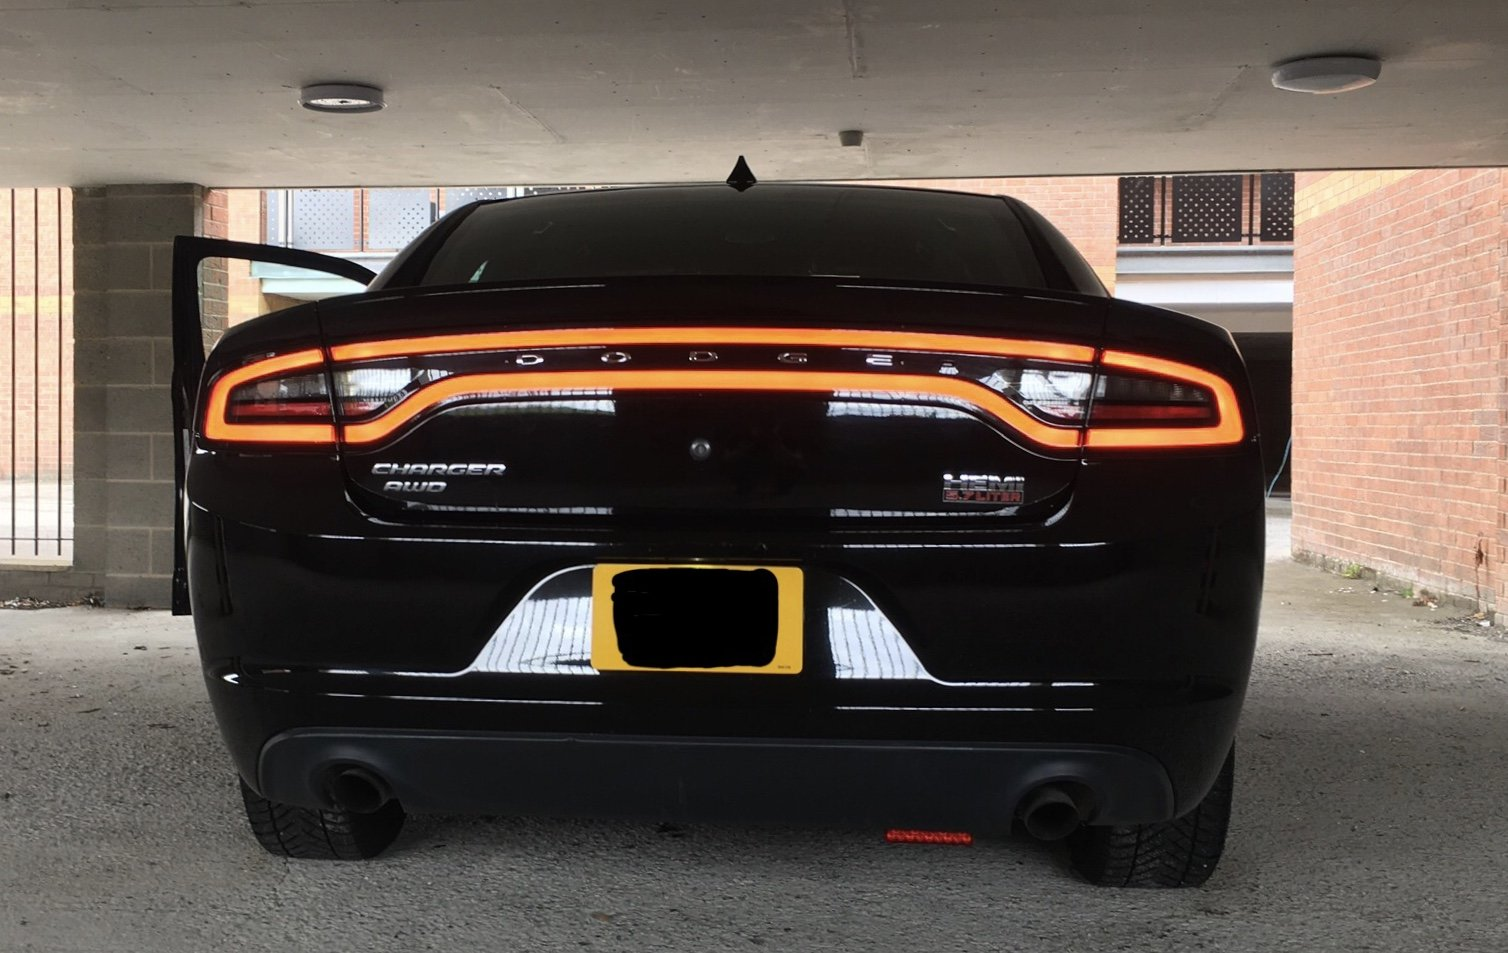 2015 Dodge Charger 5.7 v8 Hemi AWD For Sale (picture 4 of 6)